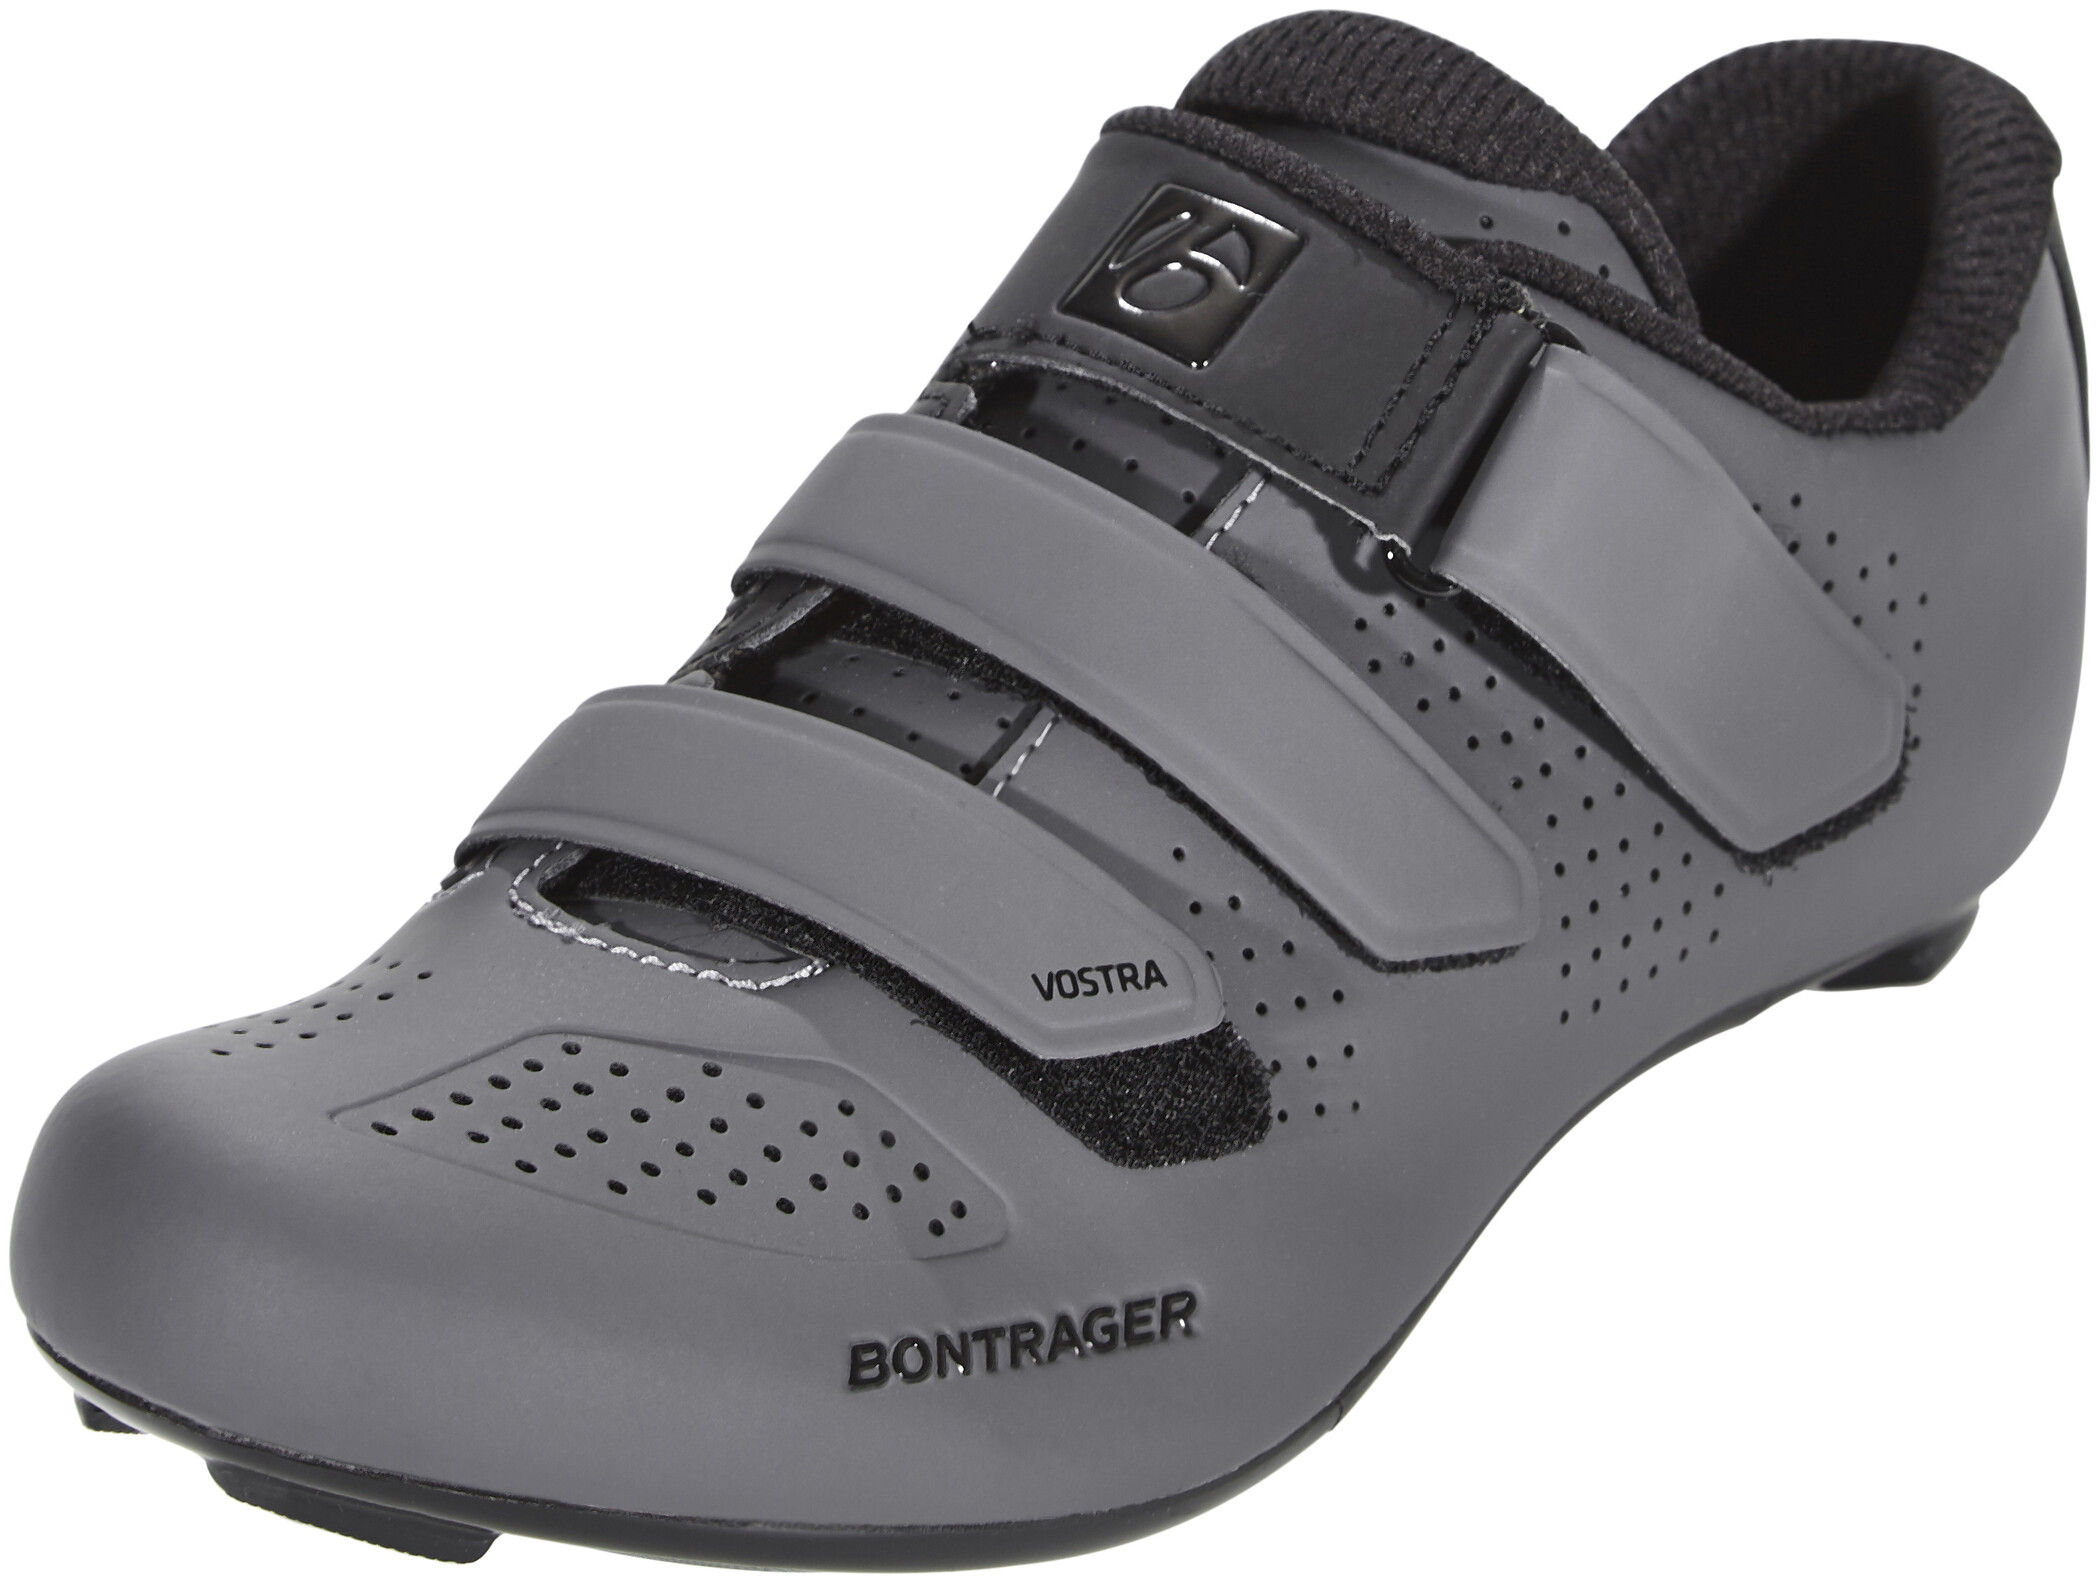 Bontrager Vostra Dame Racer sko | Shoes and overlays